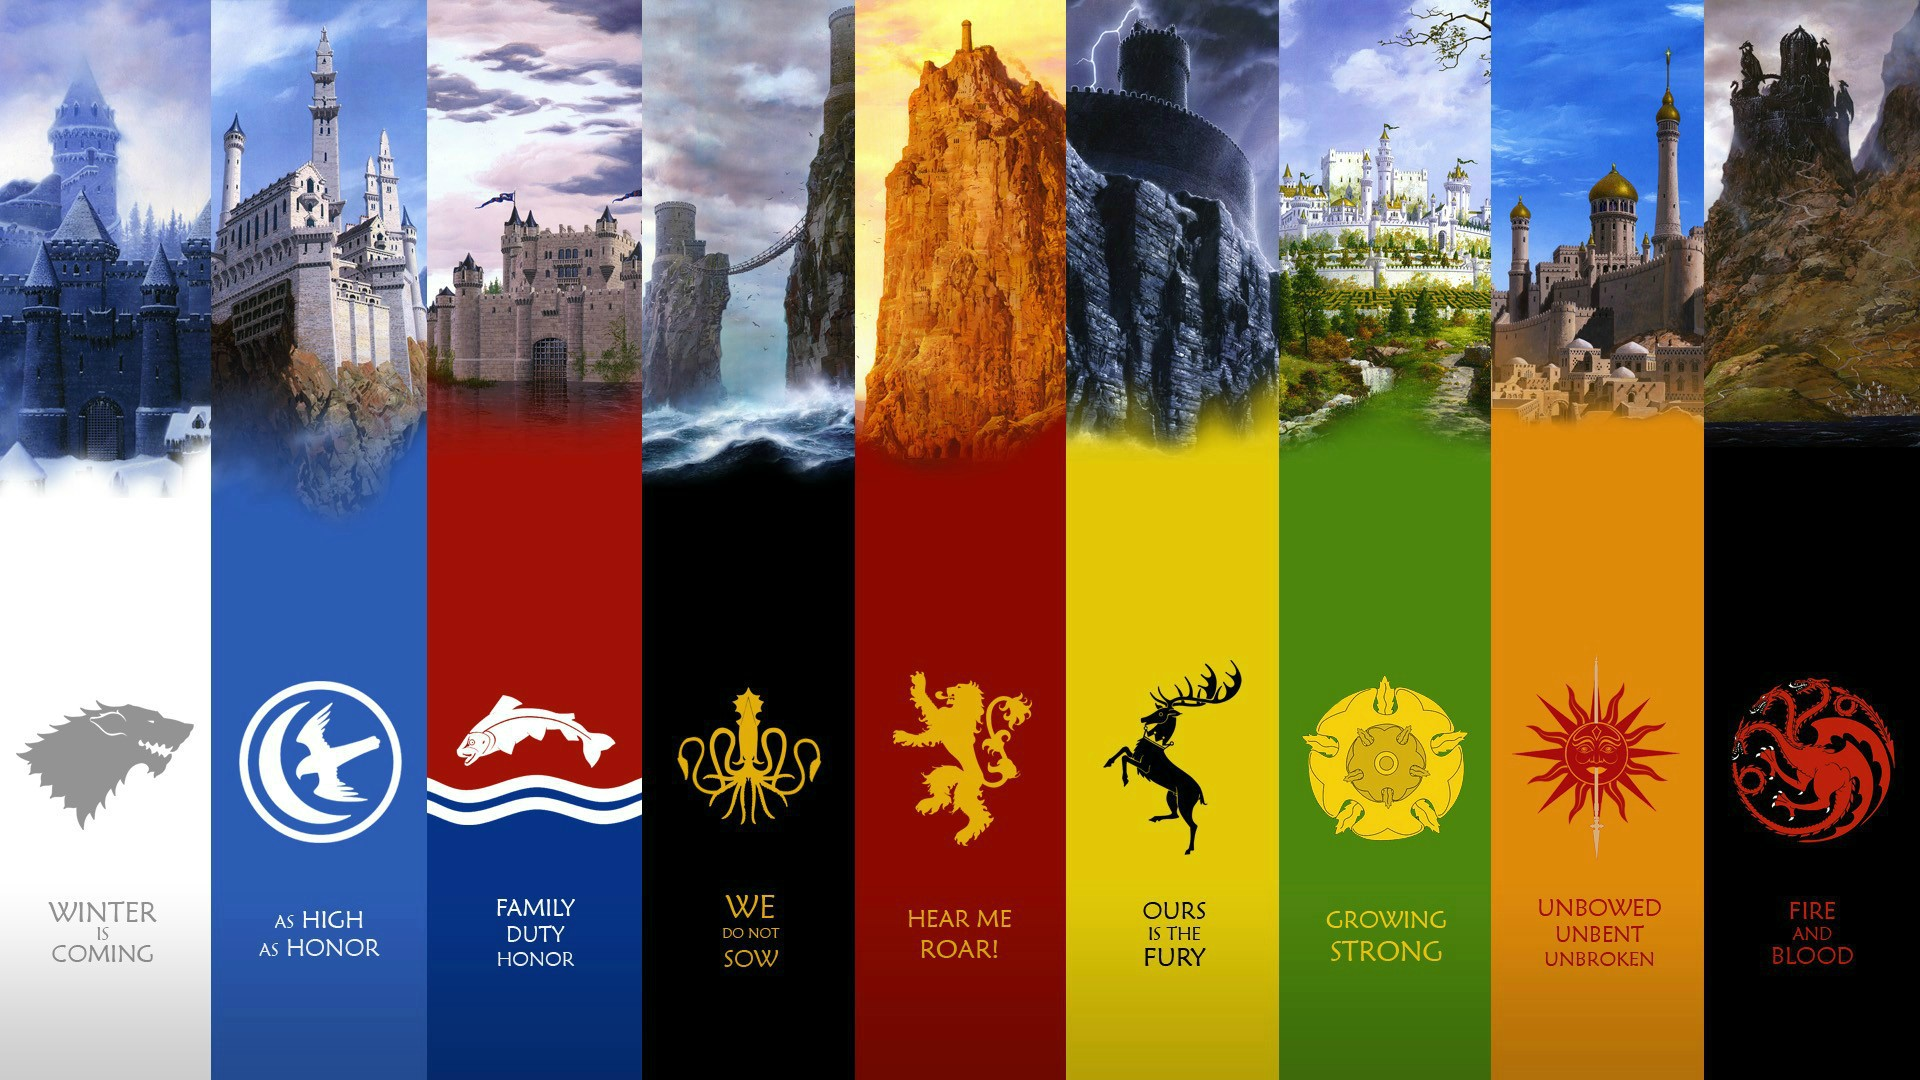 Song of Ice and Fire Computer Wallpapers Desktop Backgrounds 1920x1080